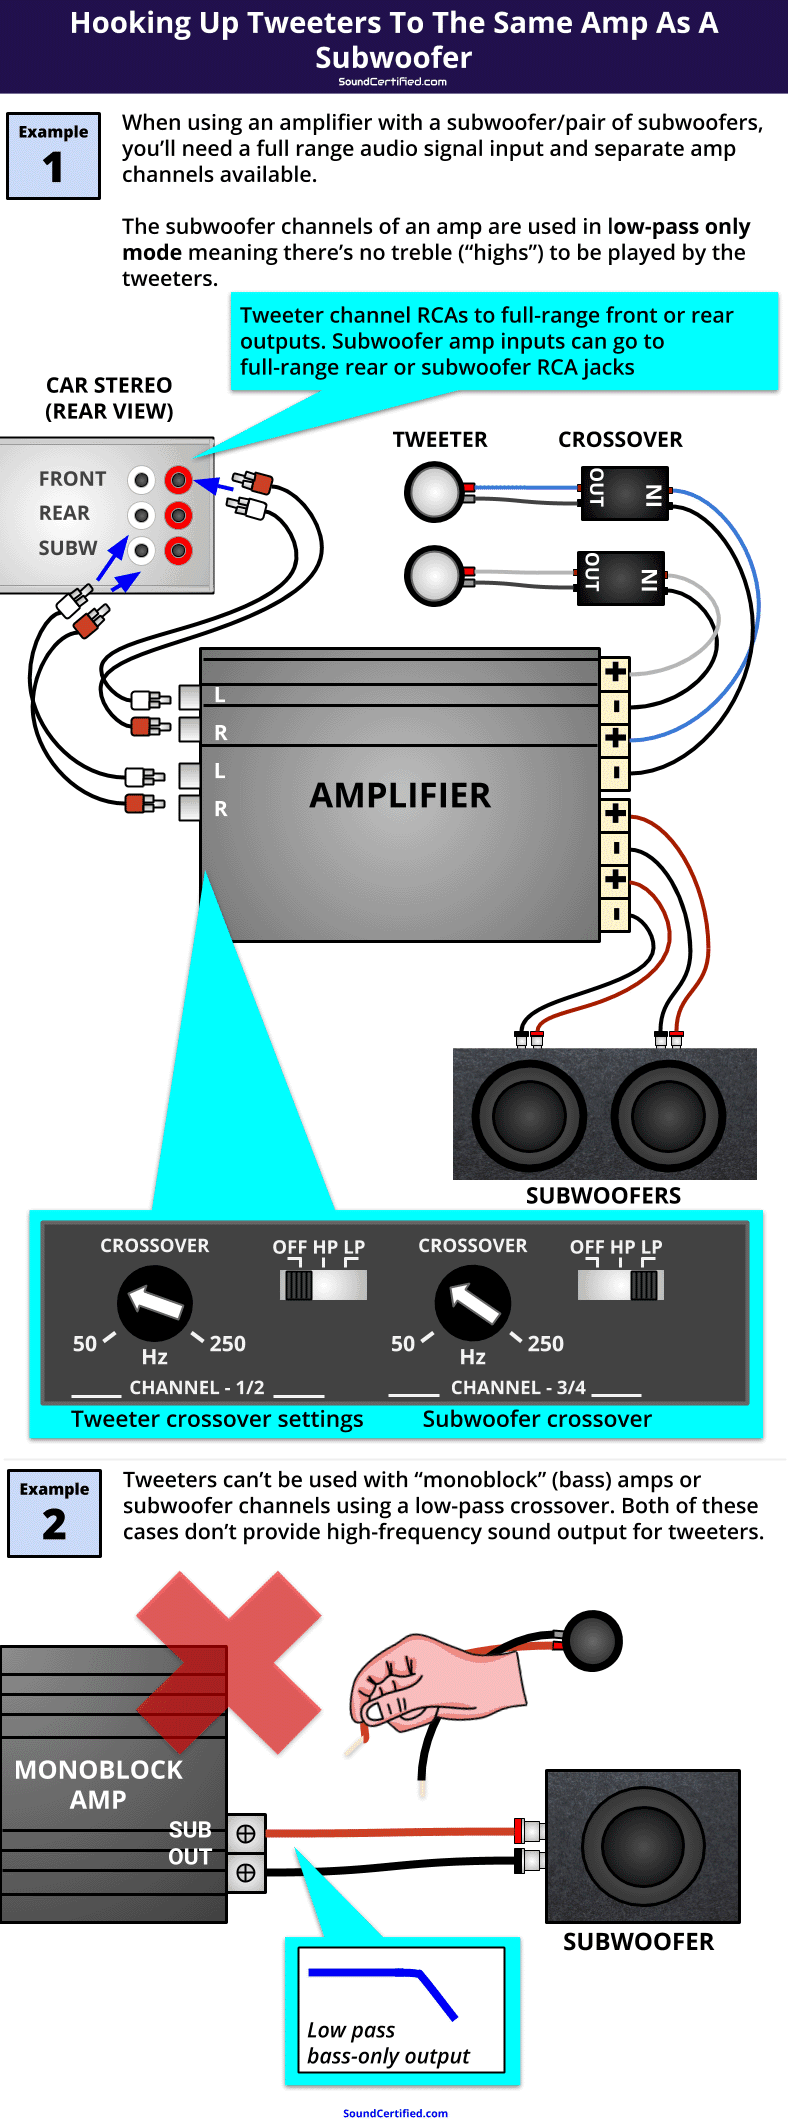 Hooking up tweeters to same amp as subwoofer diagram